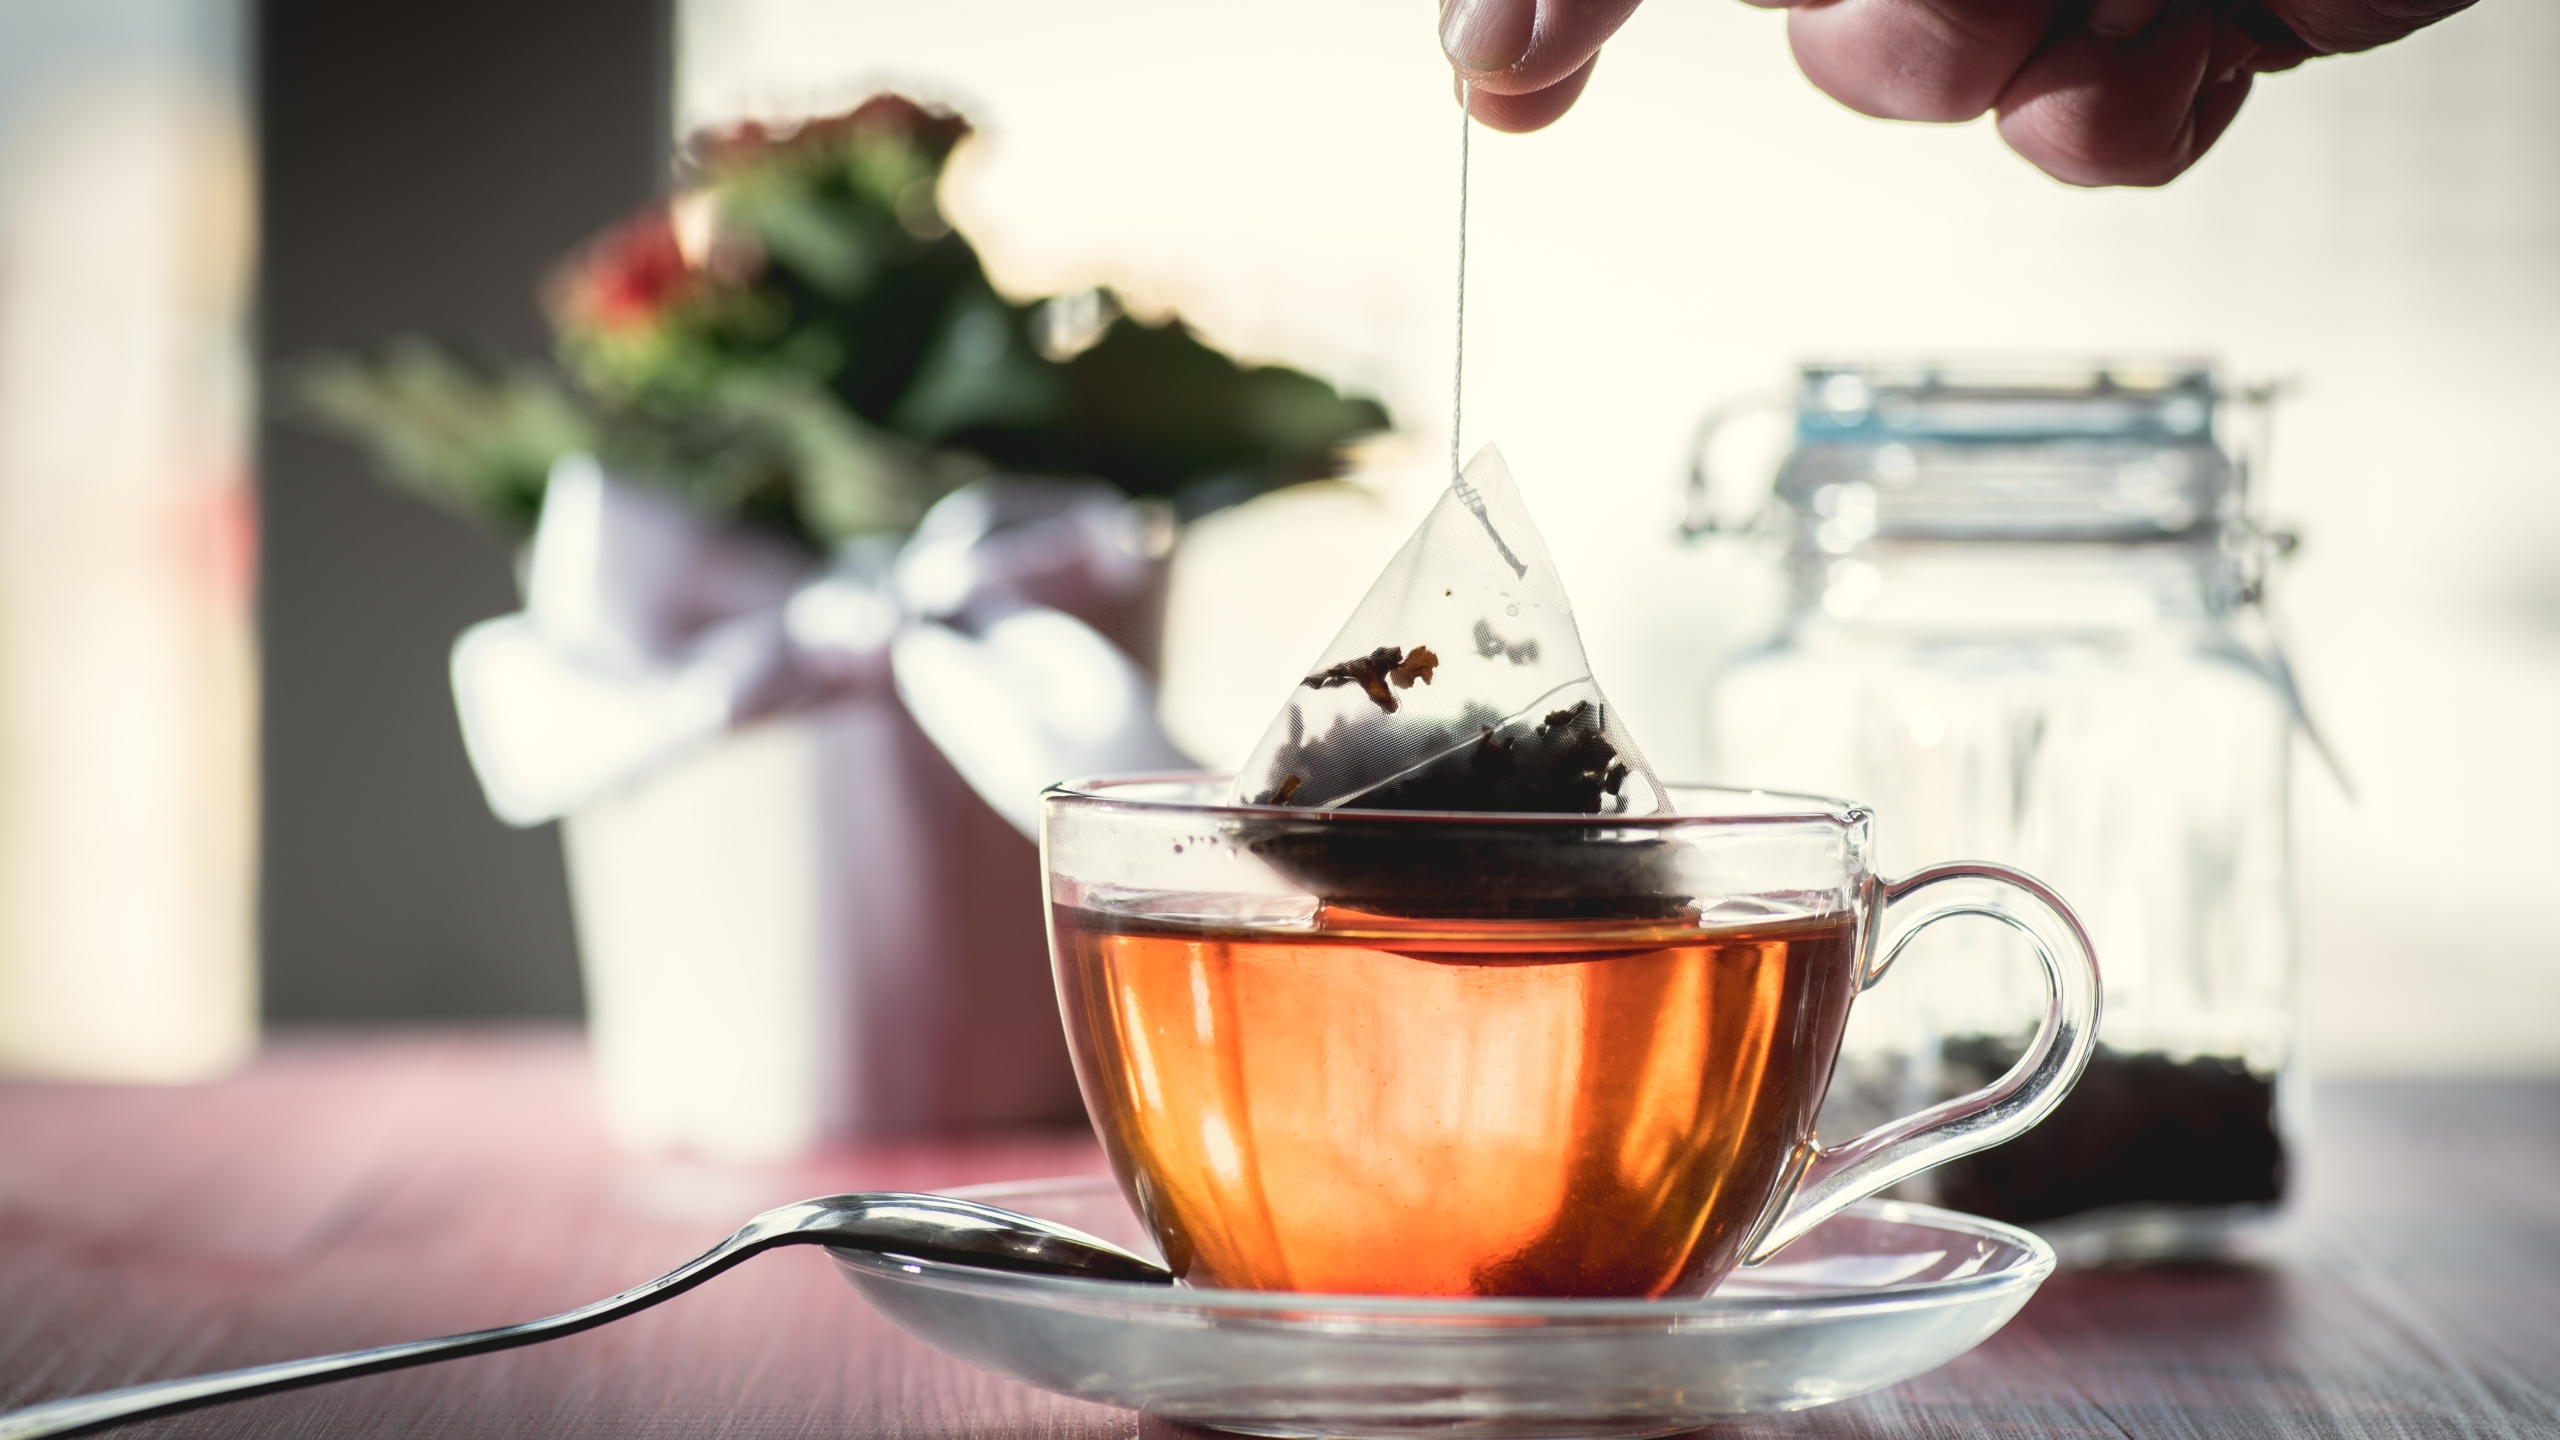 A stock photo shows someone putting a tea bag into hot water. (Credit: Stock / Getty Images Plus)